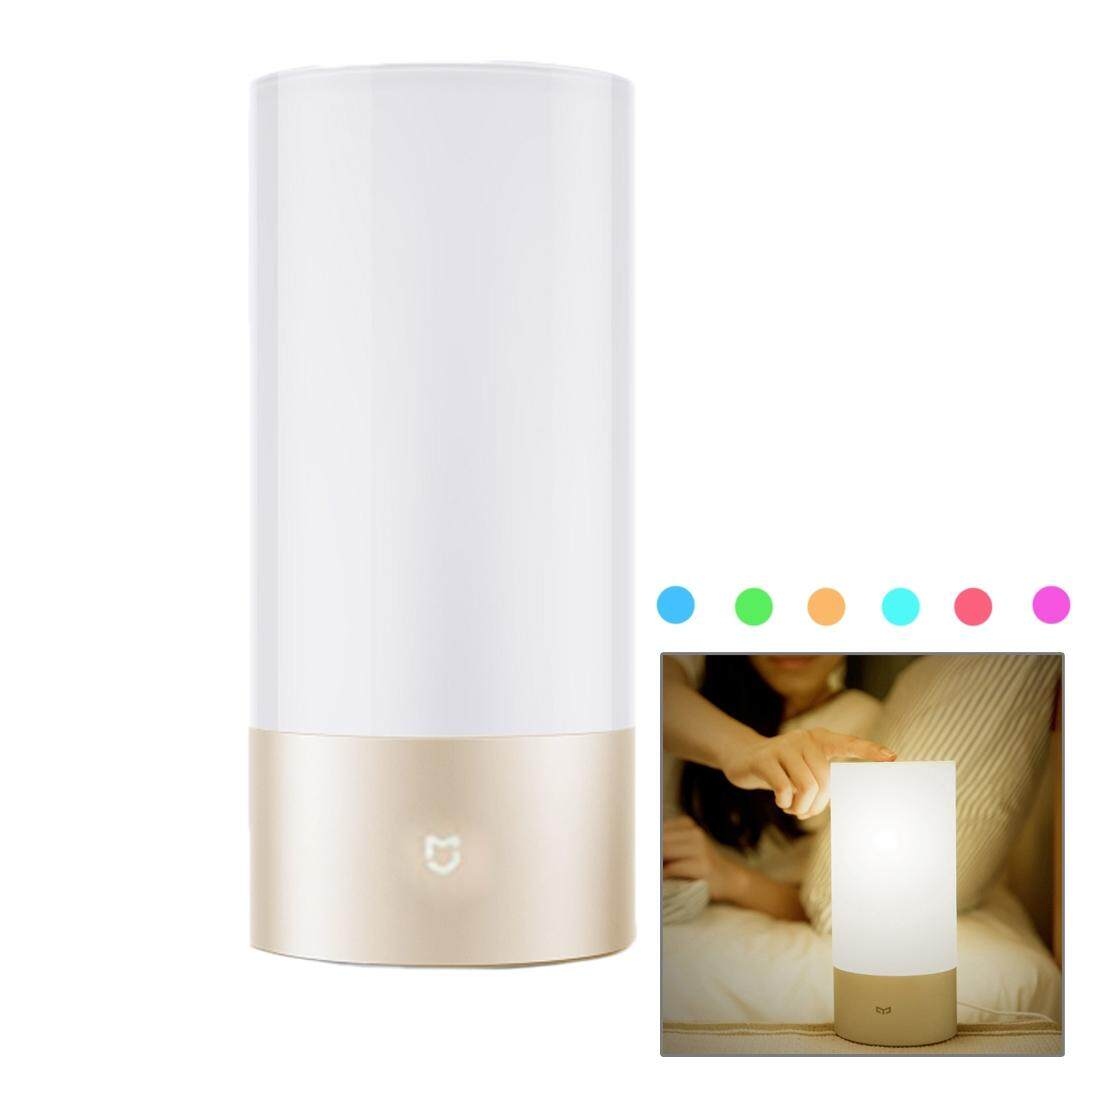 Latest Xiaomi Home Lightings Products Enjoy Huge Discounts Lazada Sg Yeelight 2 Rgbw Colorful Led Smart Wifi Original Mijia 300lm 14 Indoor Bluetooth Night Light Bedside Lamp Support Touch